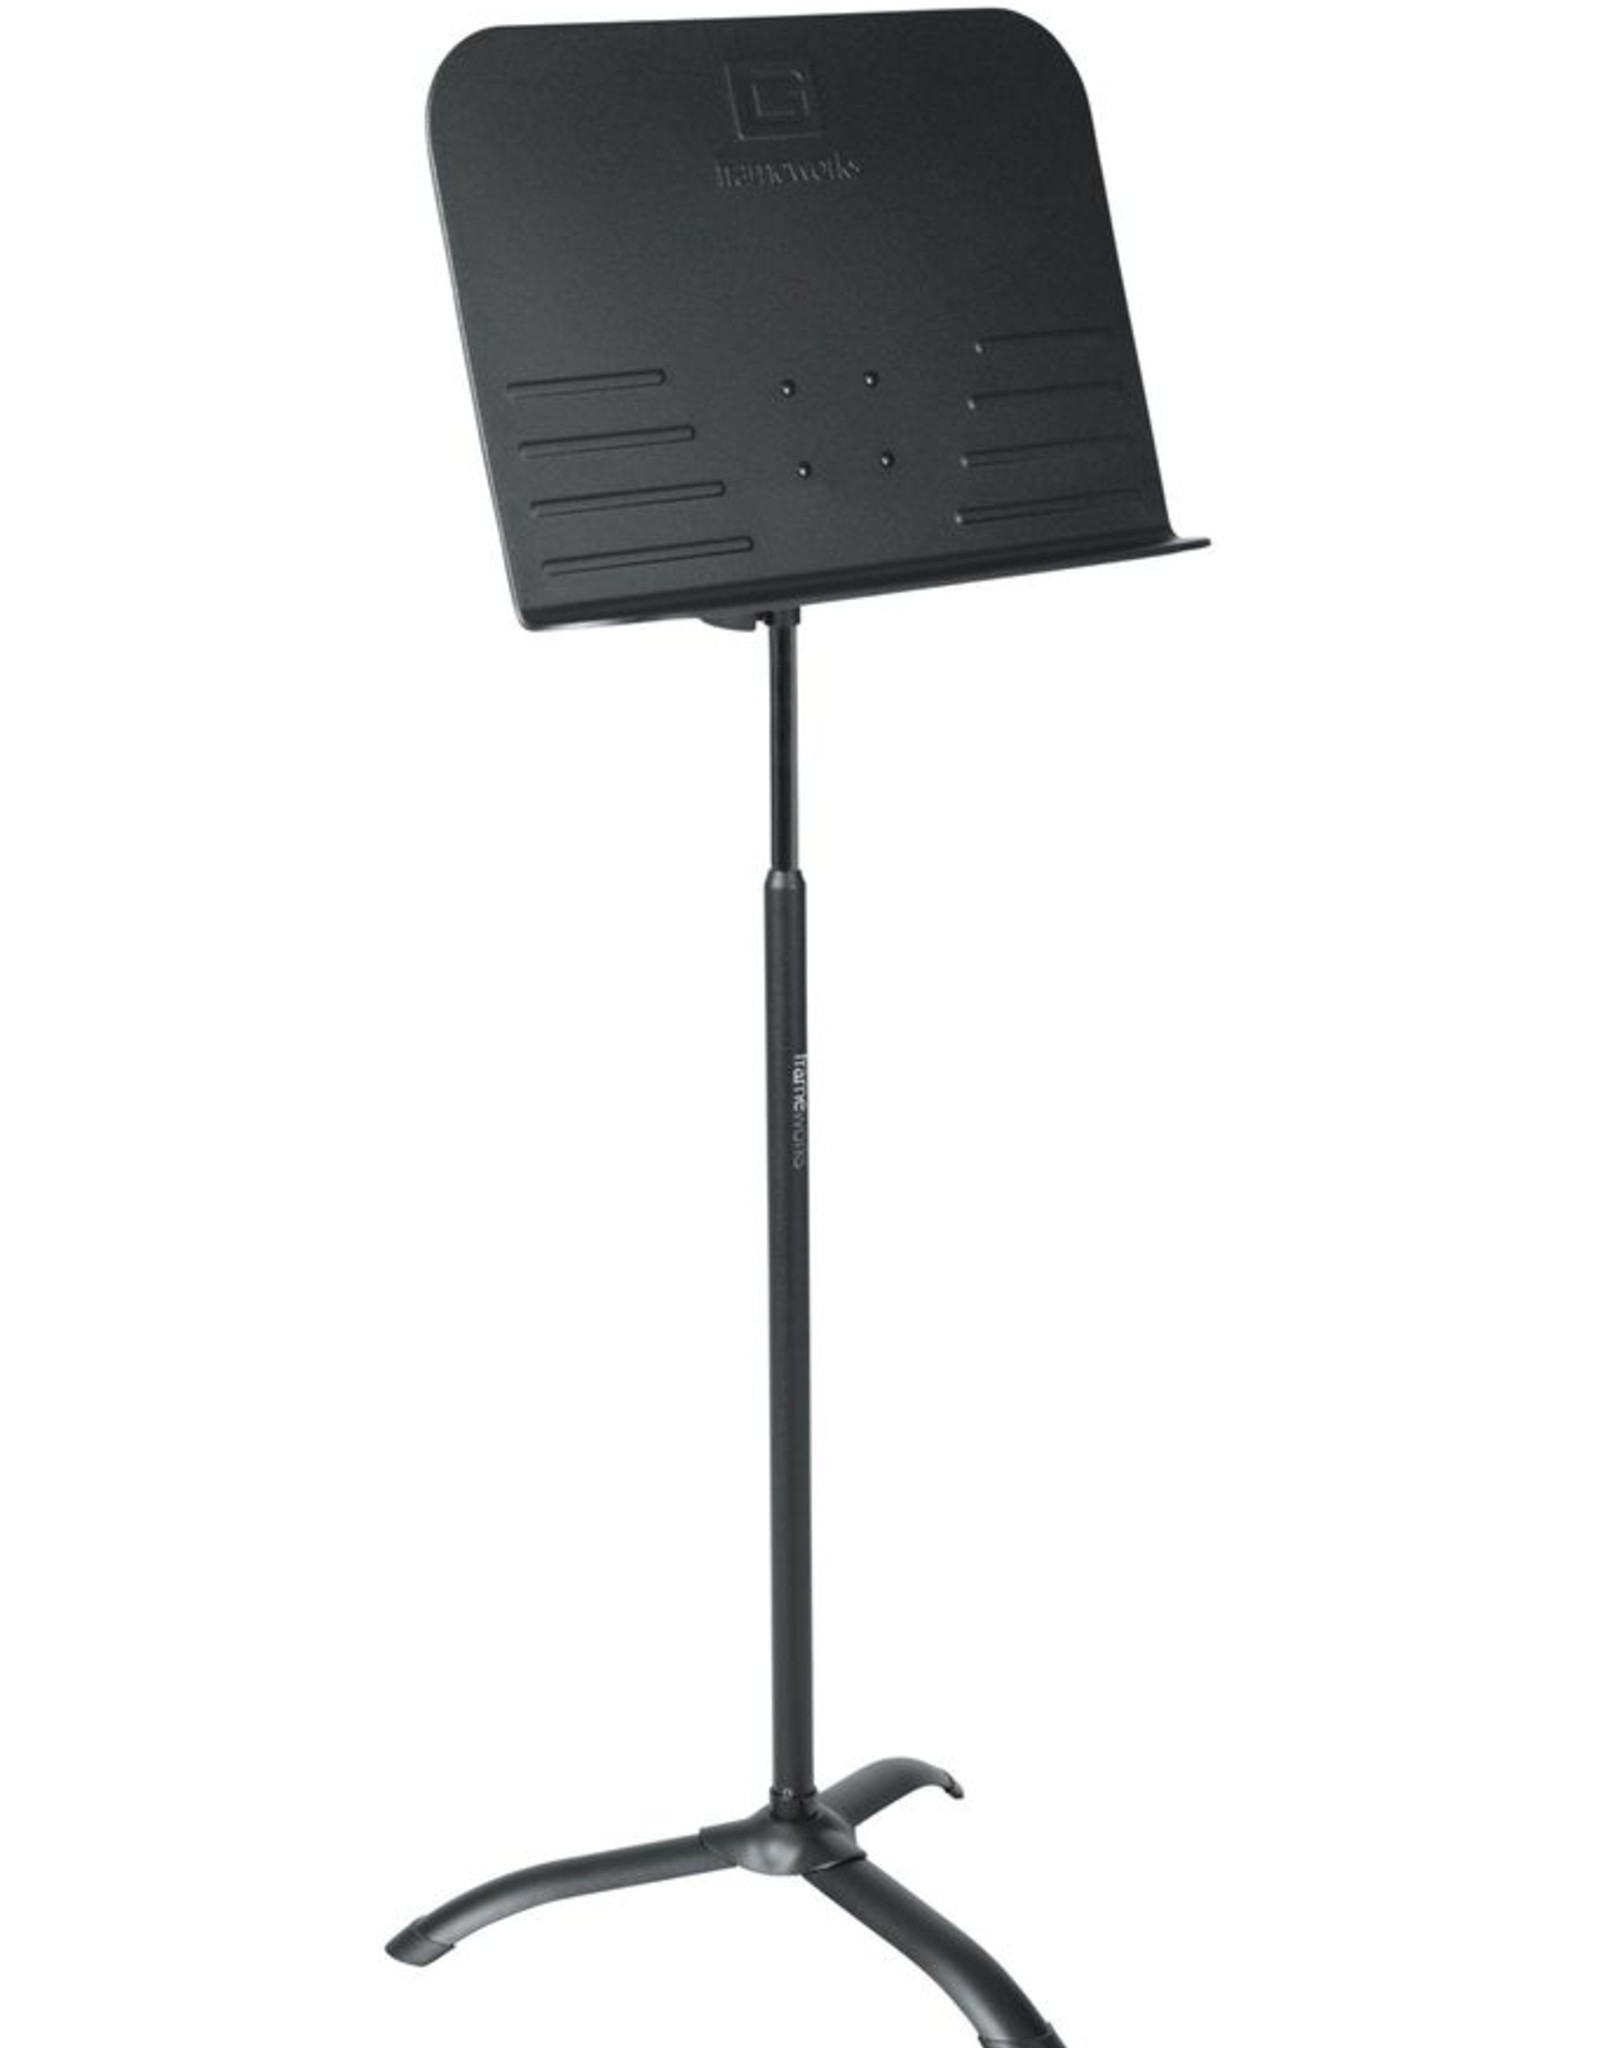 Gator Gator Frame Works - Standard Heavy Duty Lightweight Sheet Music Stand with Friction Height Adjustment